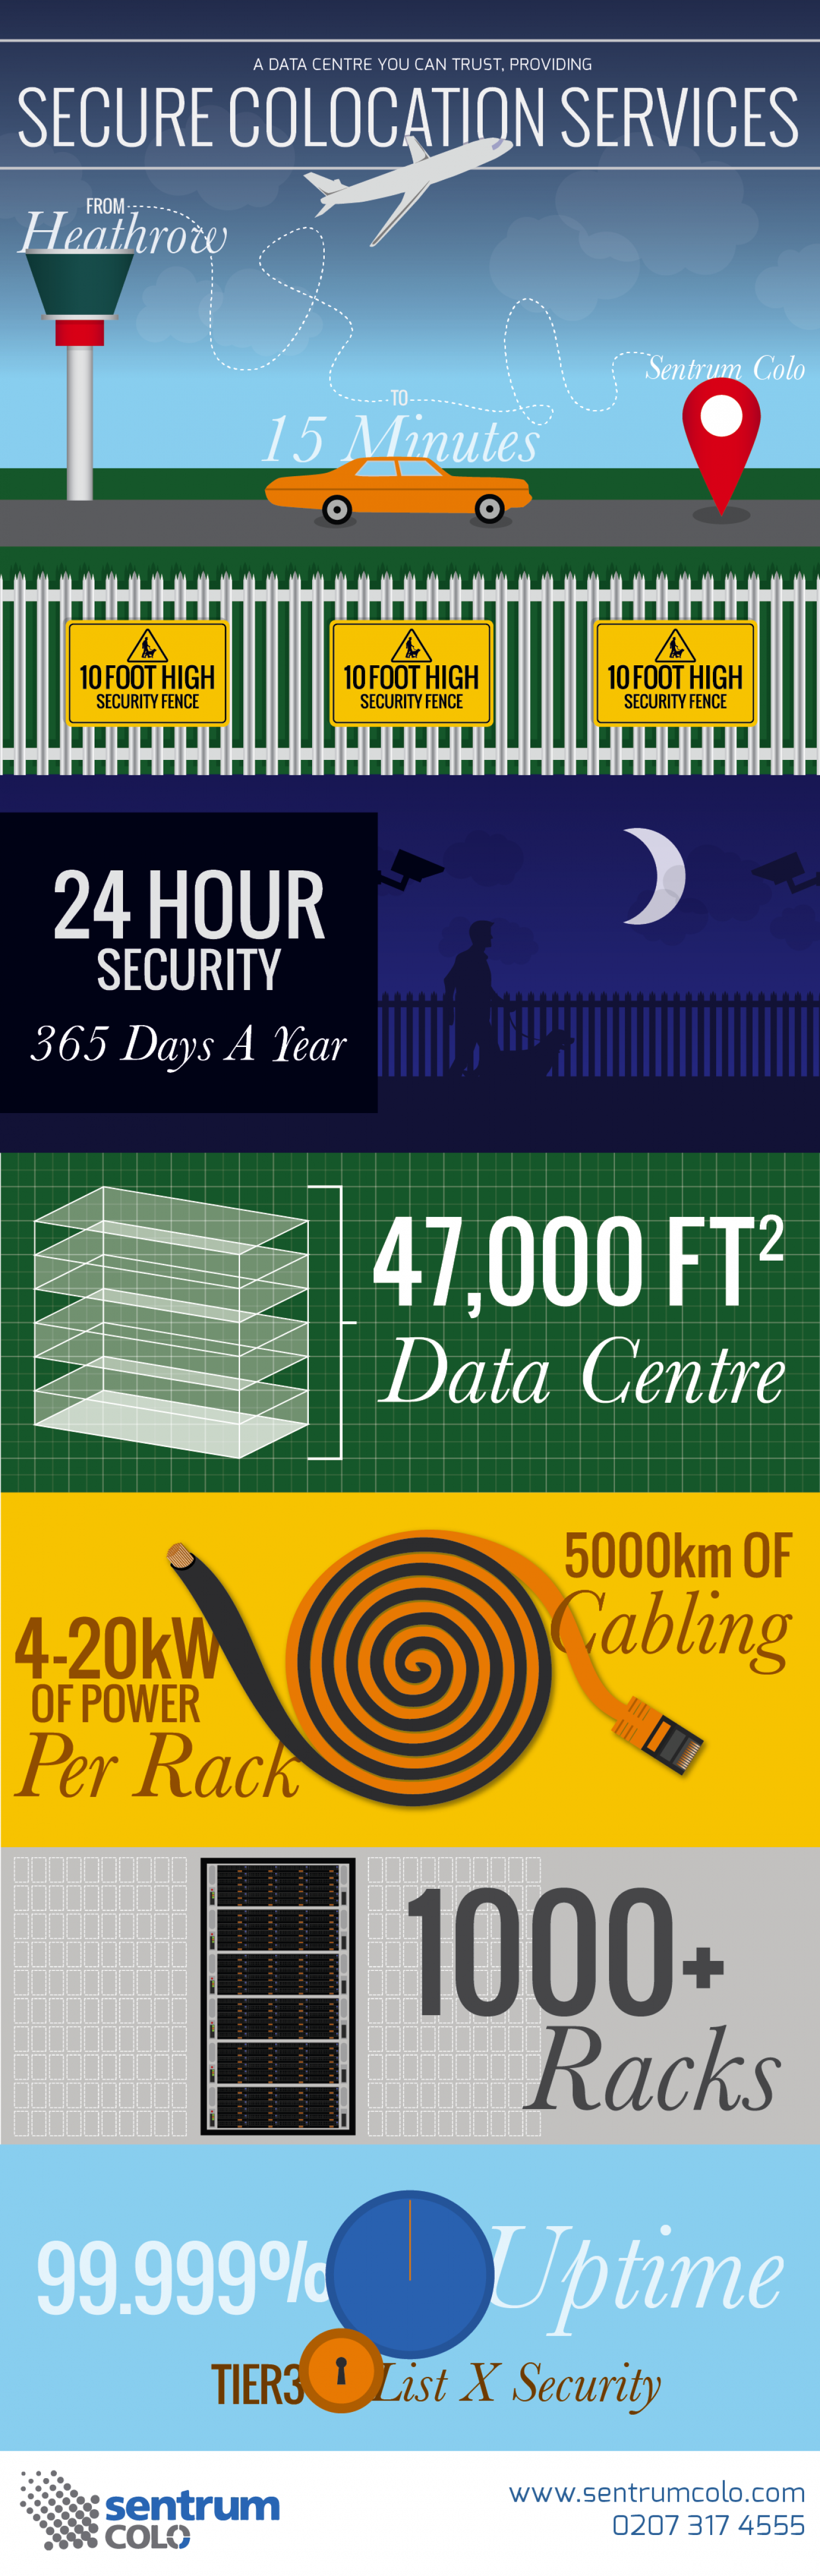 Sentrum Colo - Colocation Services Infographic